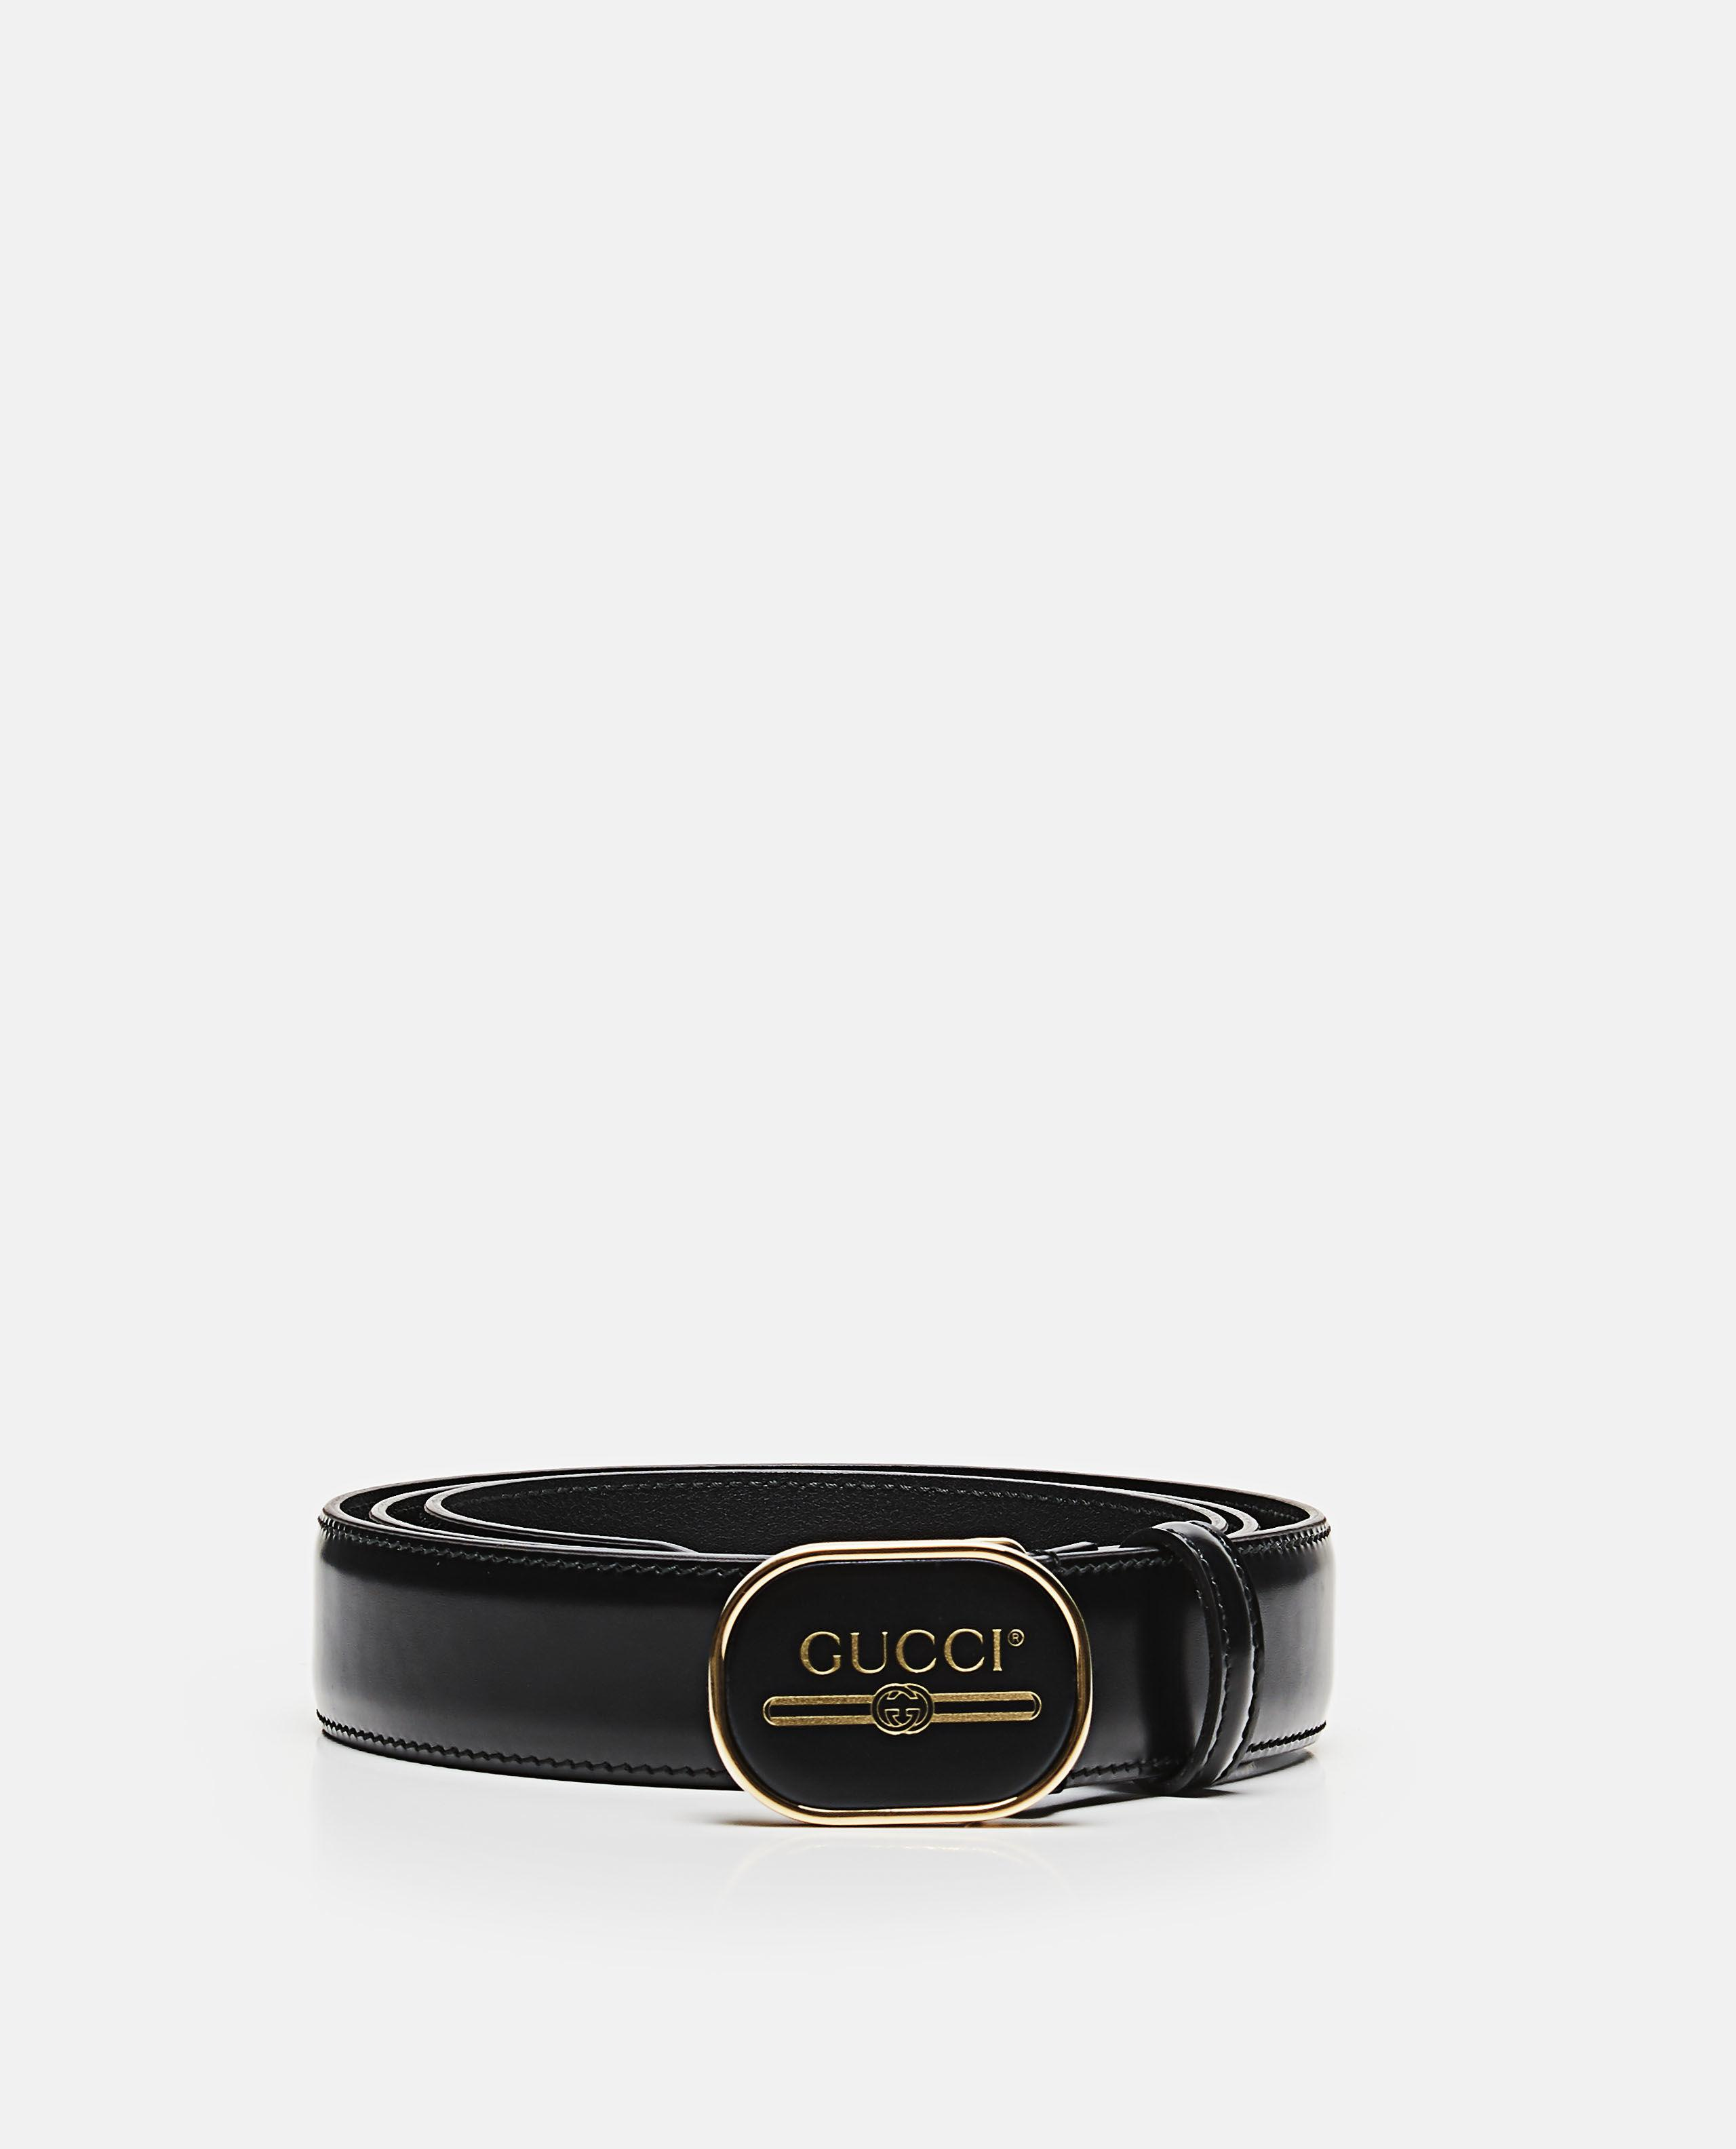 46932d6f38 Gucci - Black Leather Belt With Print Buckle for Men - Lyst. View fullscreen